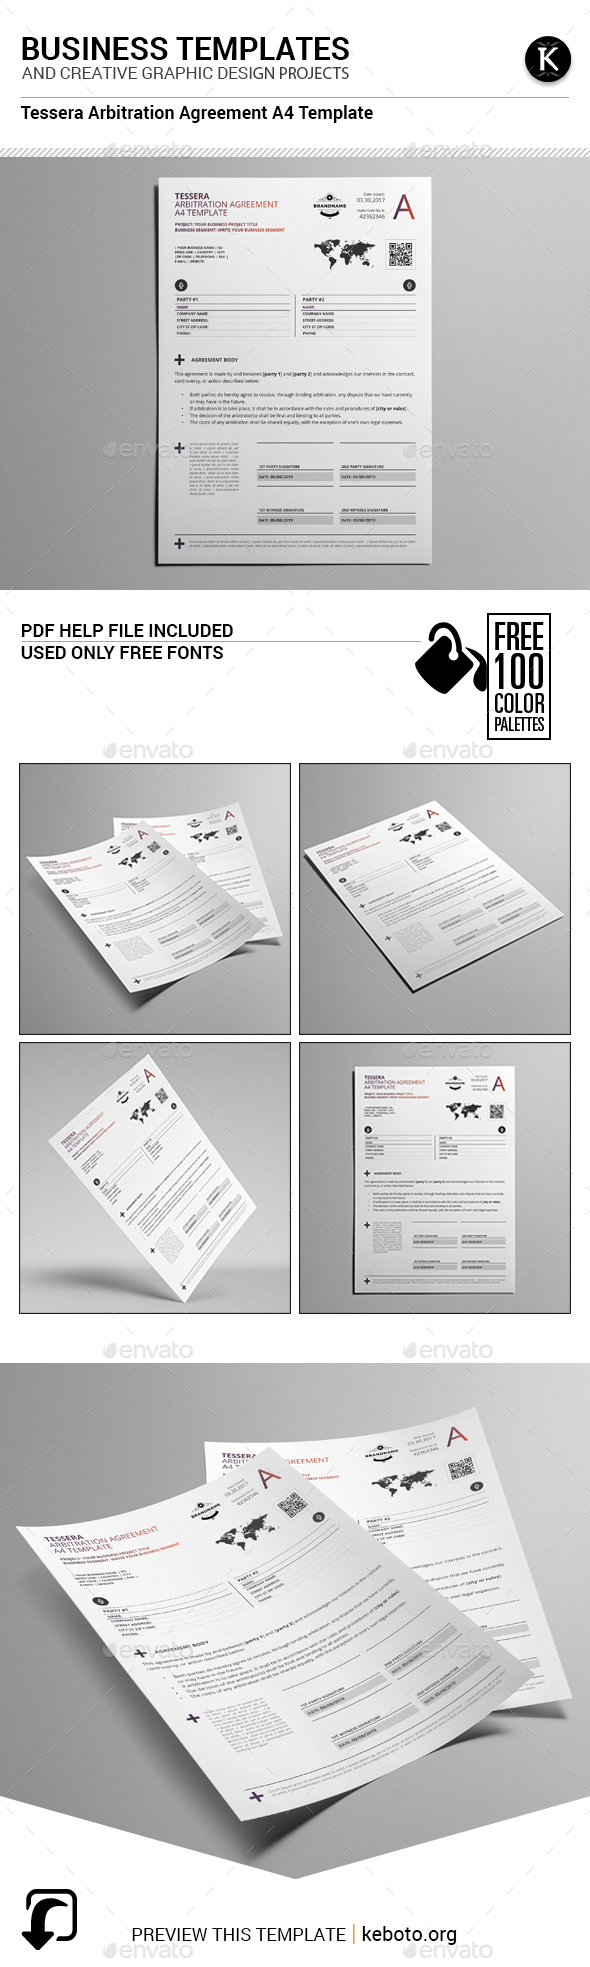 Tessera Arbitration Agreement A4 Template - Miscellaneous Print Templates